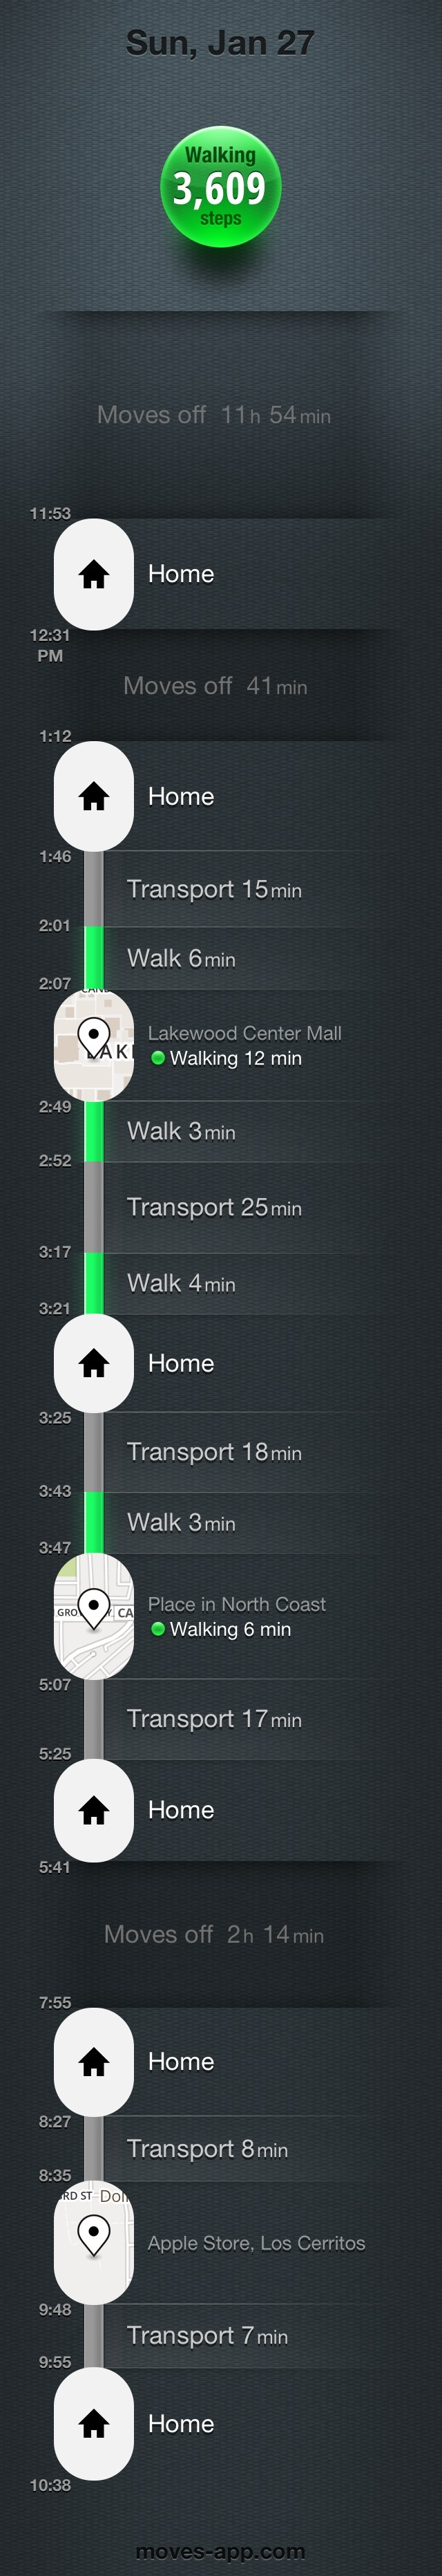 best walk tracking app for iphone